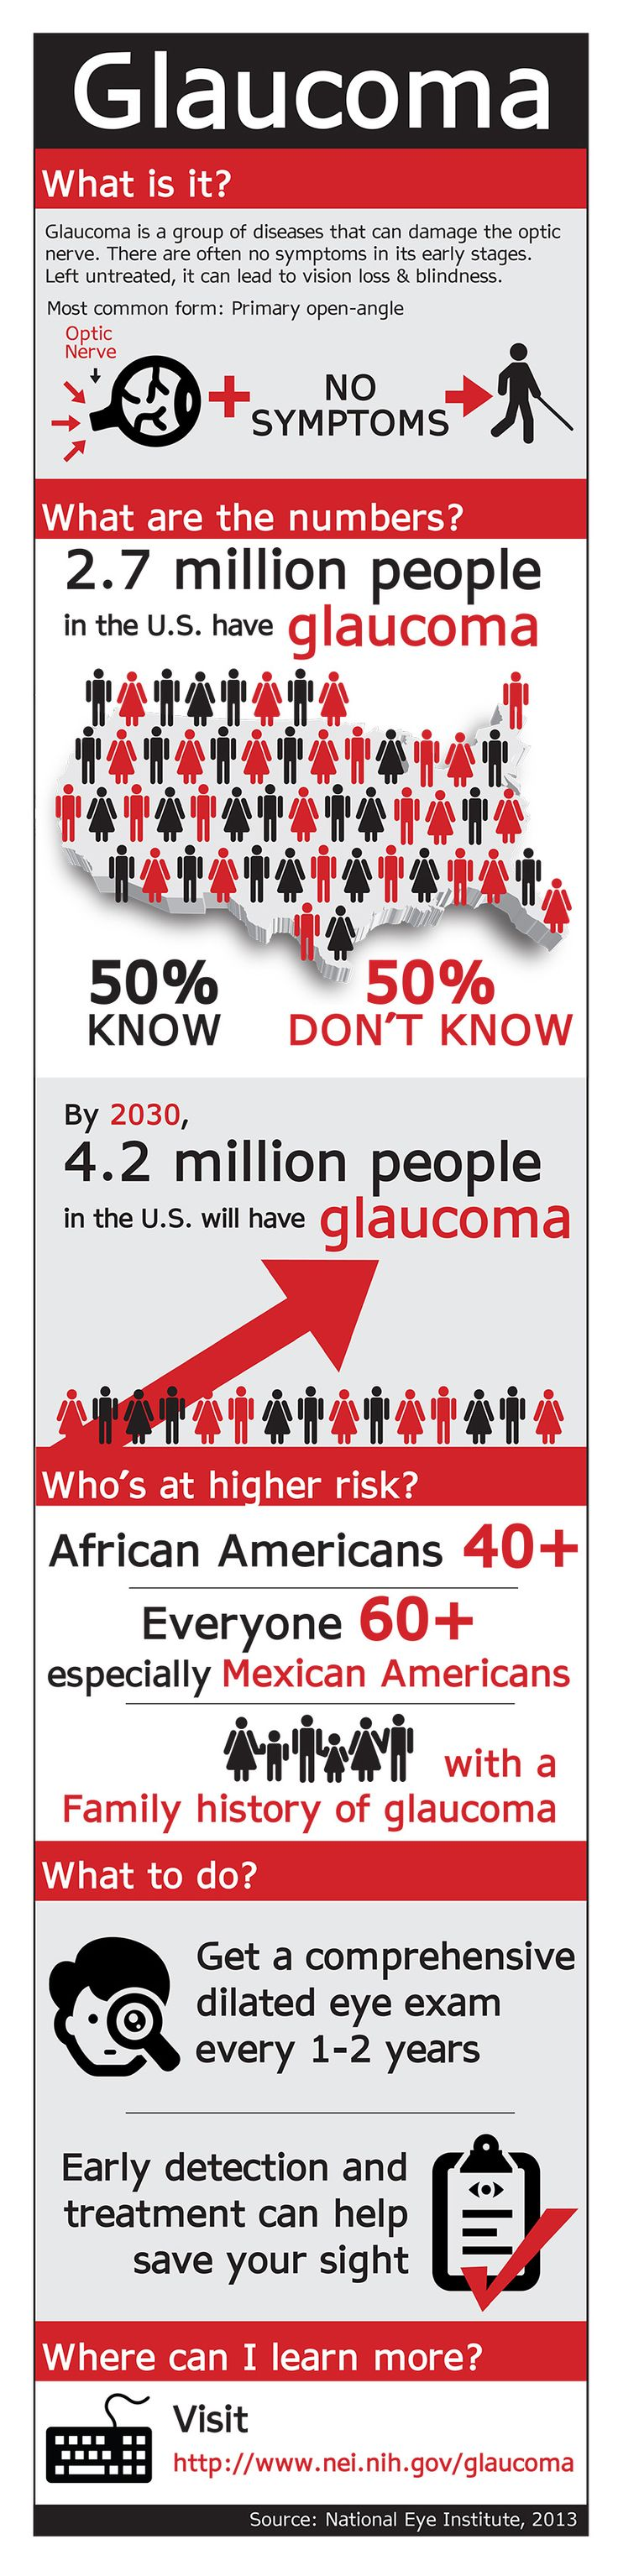 Did you know that there are different types of glaucoma? Primary open-angle glaucoma is the most common form and often has no symptoms in its early stages. That means you could have it and not know it. infographic via NEHEP @National Institutes of Health